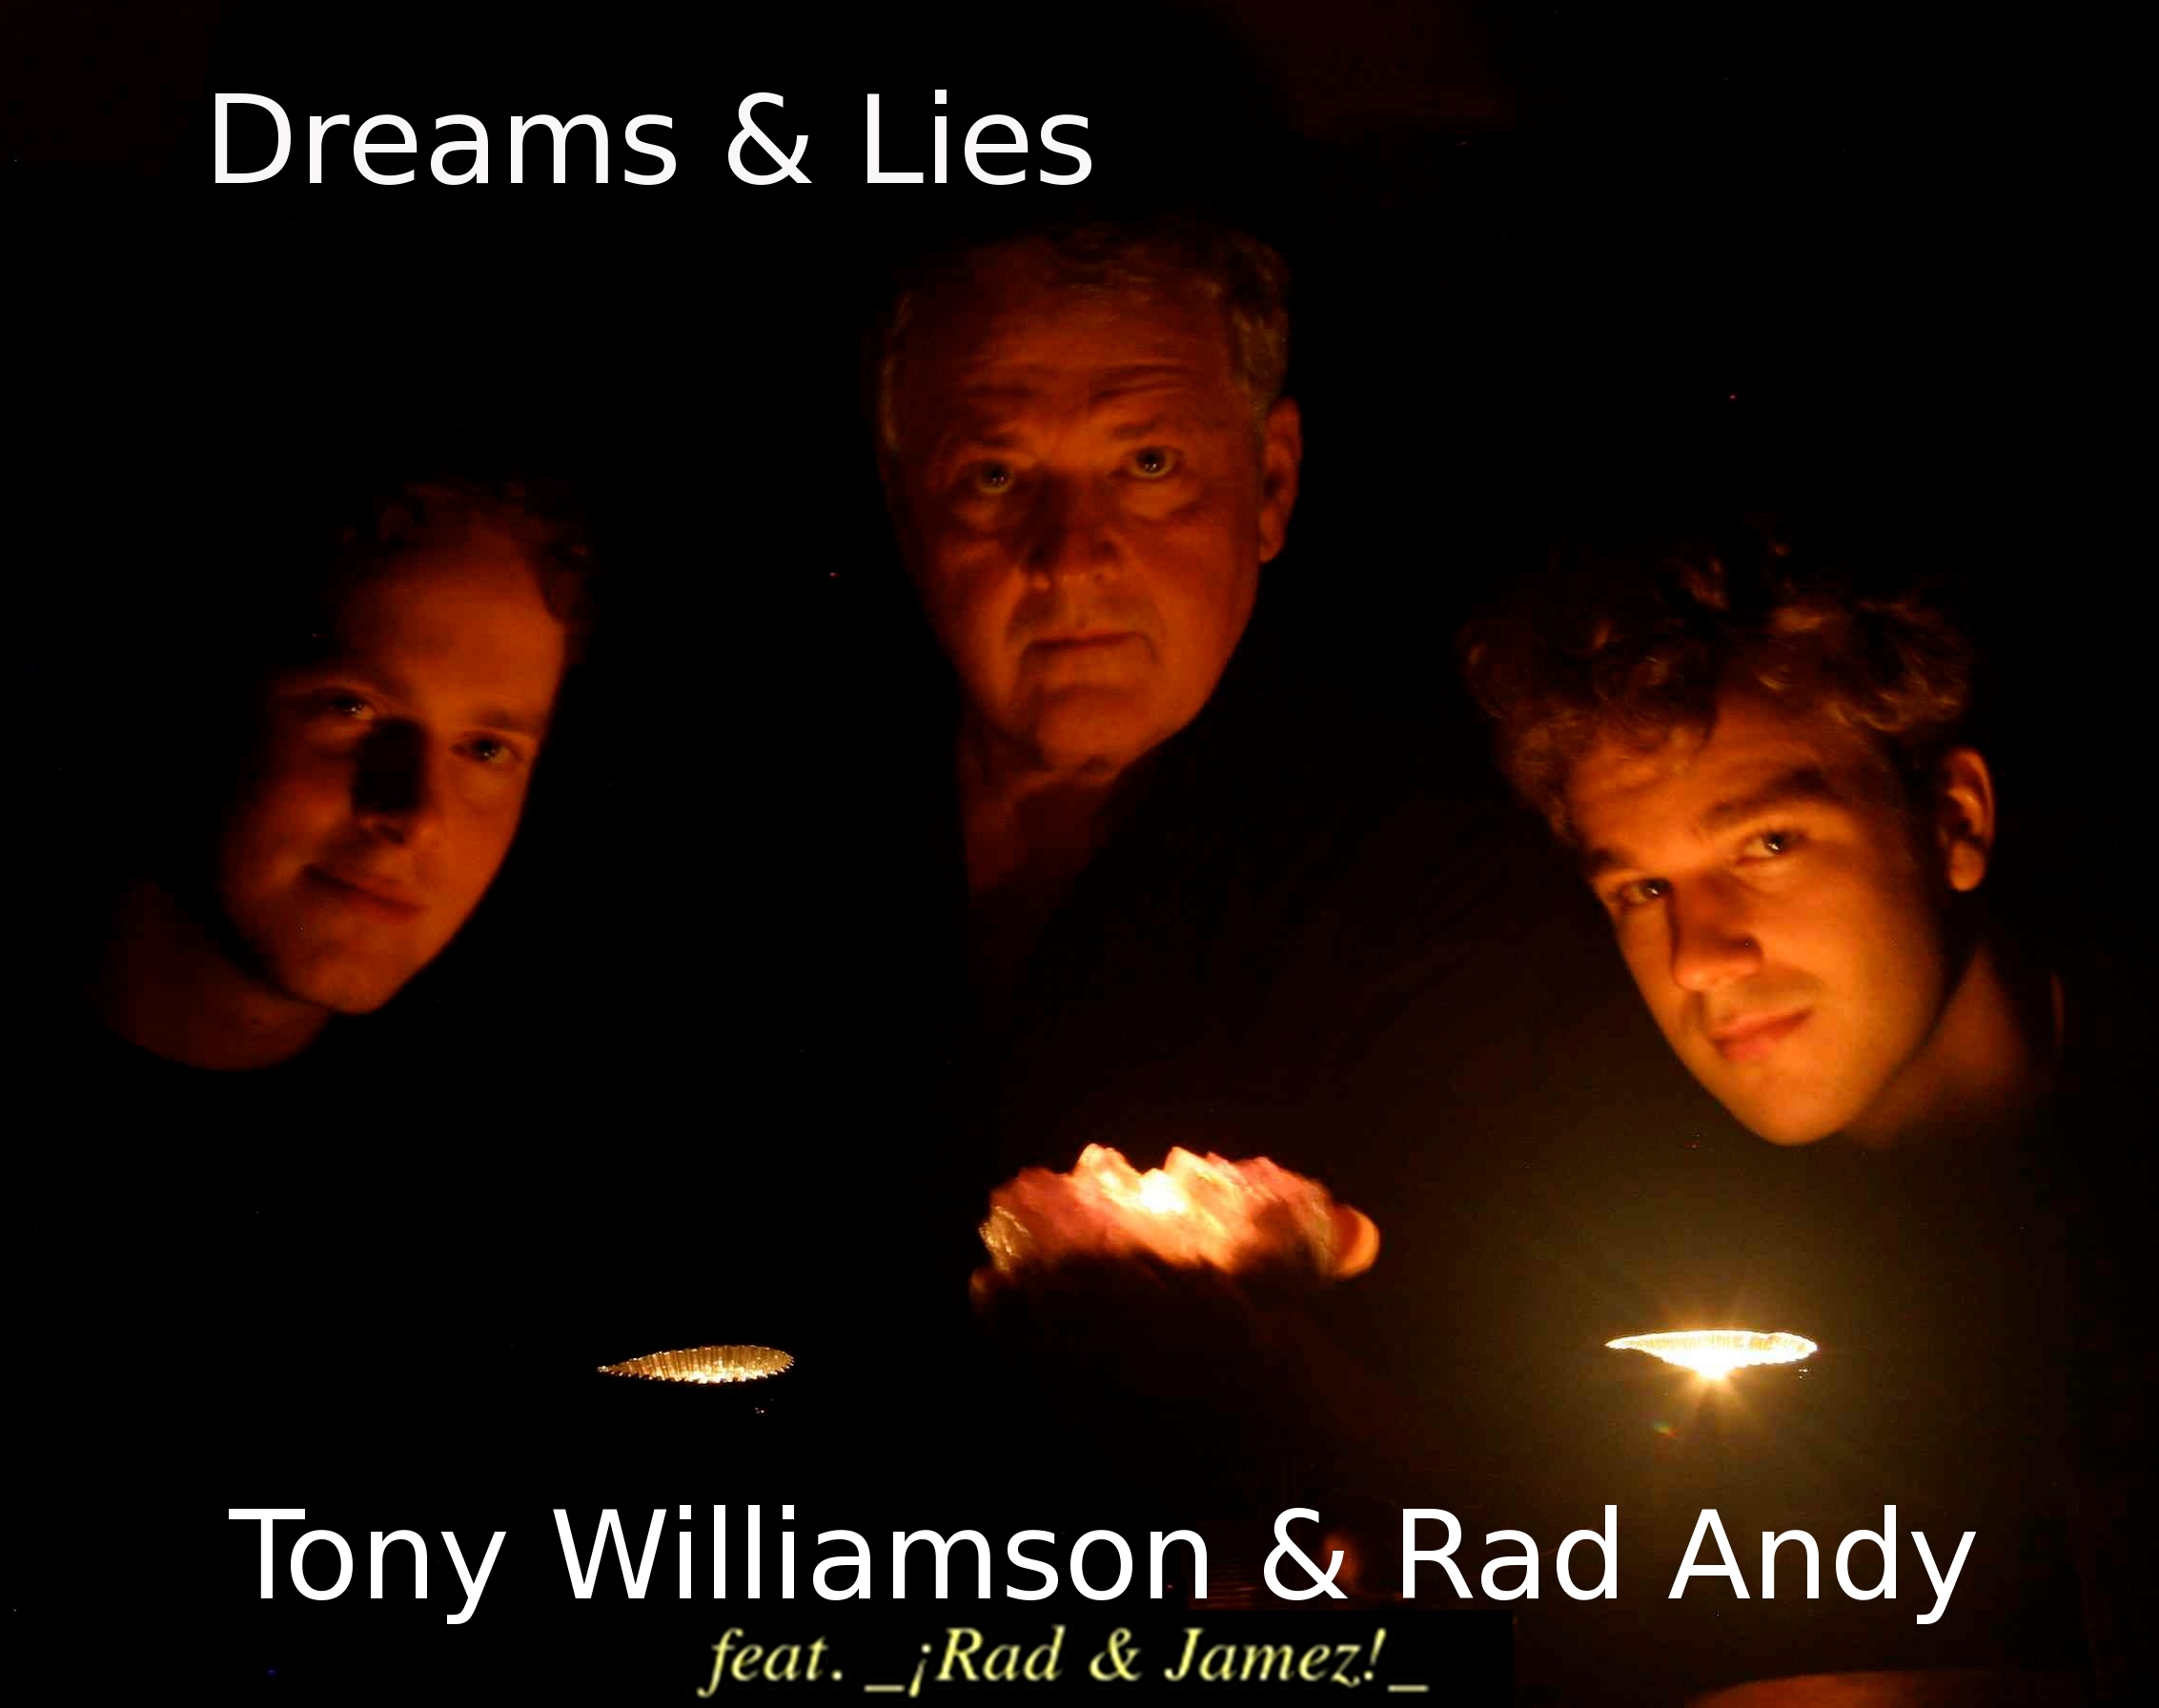 """The signature album of ¡Rad & Jamez!'s Real Groove Music style is an all original collaboration of Tony Williamson & Rad Andy, featuring James Dawkins! This album is an 11 track disc in a sleek trifold package. Combies traditional instruments such as mandolin and acoustic guitar with rocking drums, electric bass and delicate countermelodies. Fuses jazz and acoustic styles with bluegrass influence.    Legendary mandolin player Tony Williamson blazinges forth with his scintillating jams. Joining him with dynamic vocals and inventive guitar riffs will be Rad Andy. Underneath these fascinating textures are the smooth basslines of James Dawkins, whose runs and solos never fail to delight and dazzle. The three's recent release of the new album """"Dreams & Lies"""" has been received with enthusiasm wherever the trio has toured, including Triad Acoustic Stage in Greensboro, Randy Wood's Concert Hall in GA, and the elegant Mansion in Chapel Hill."""